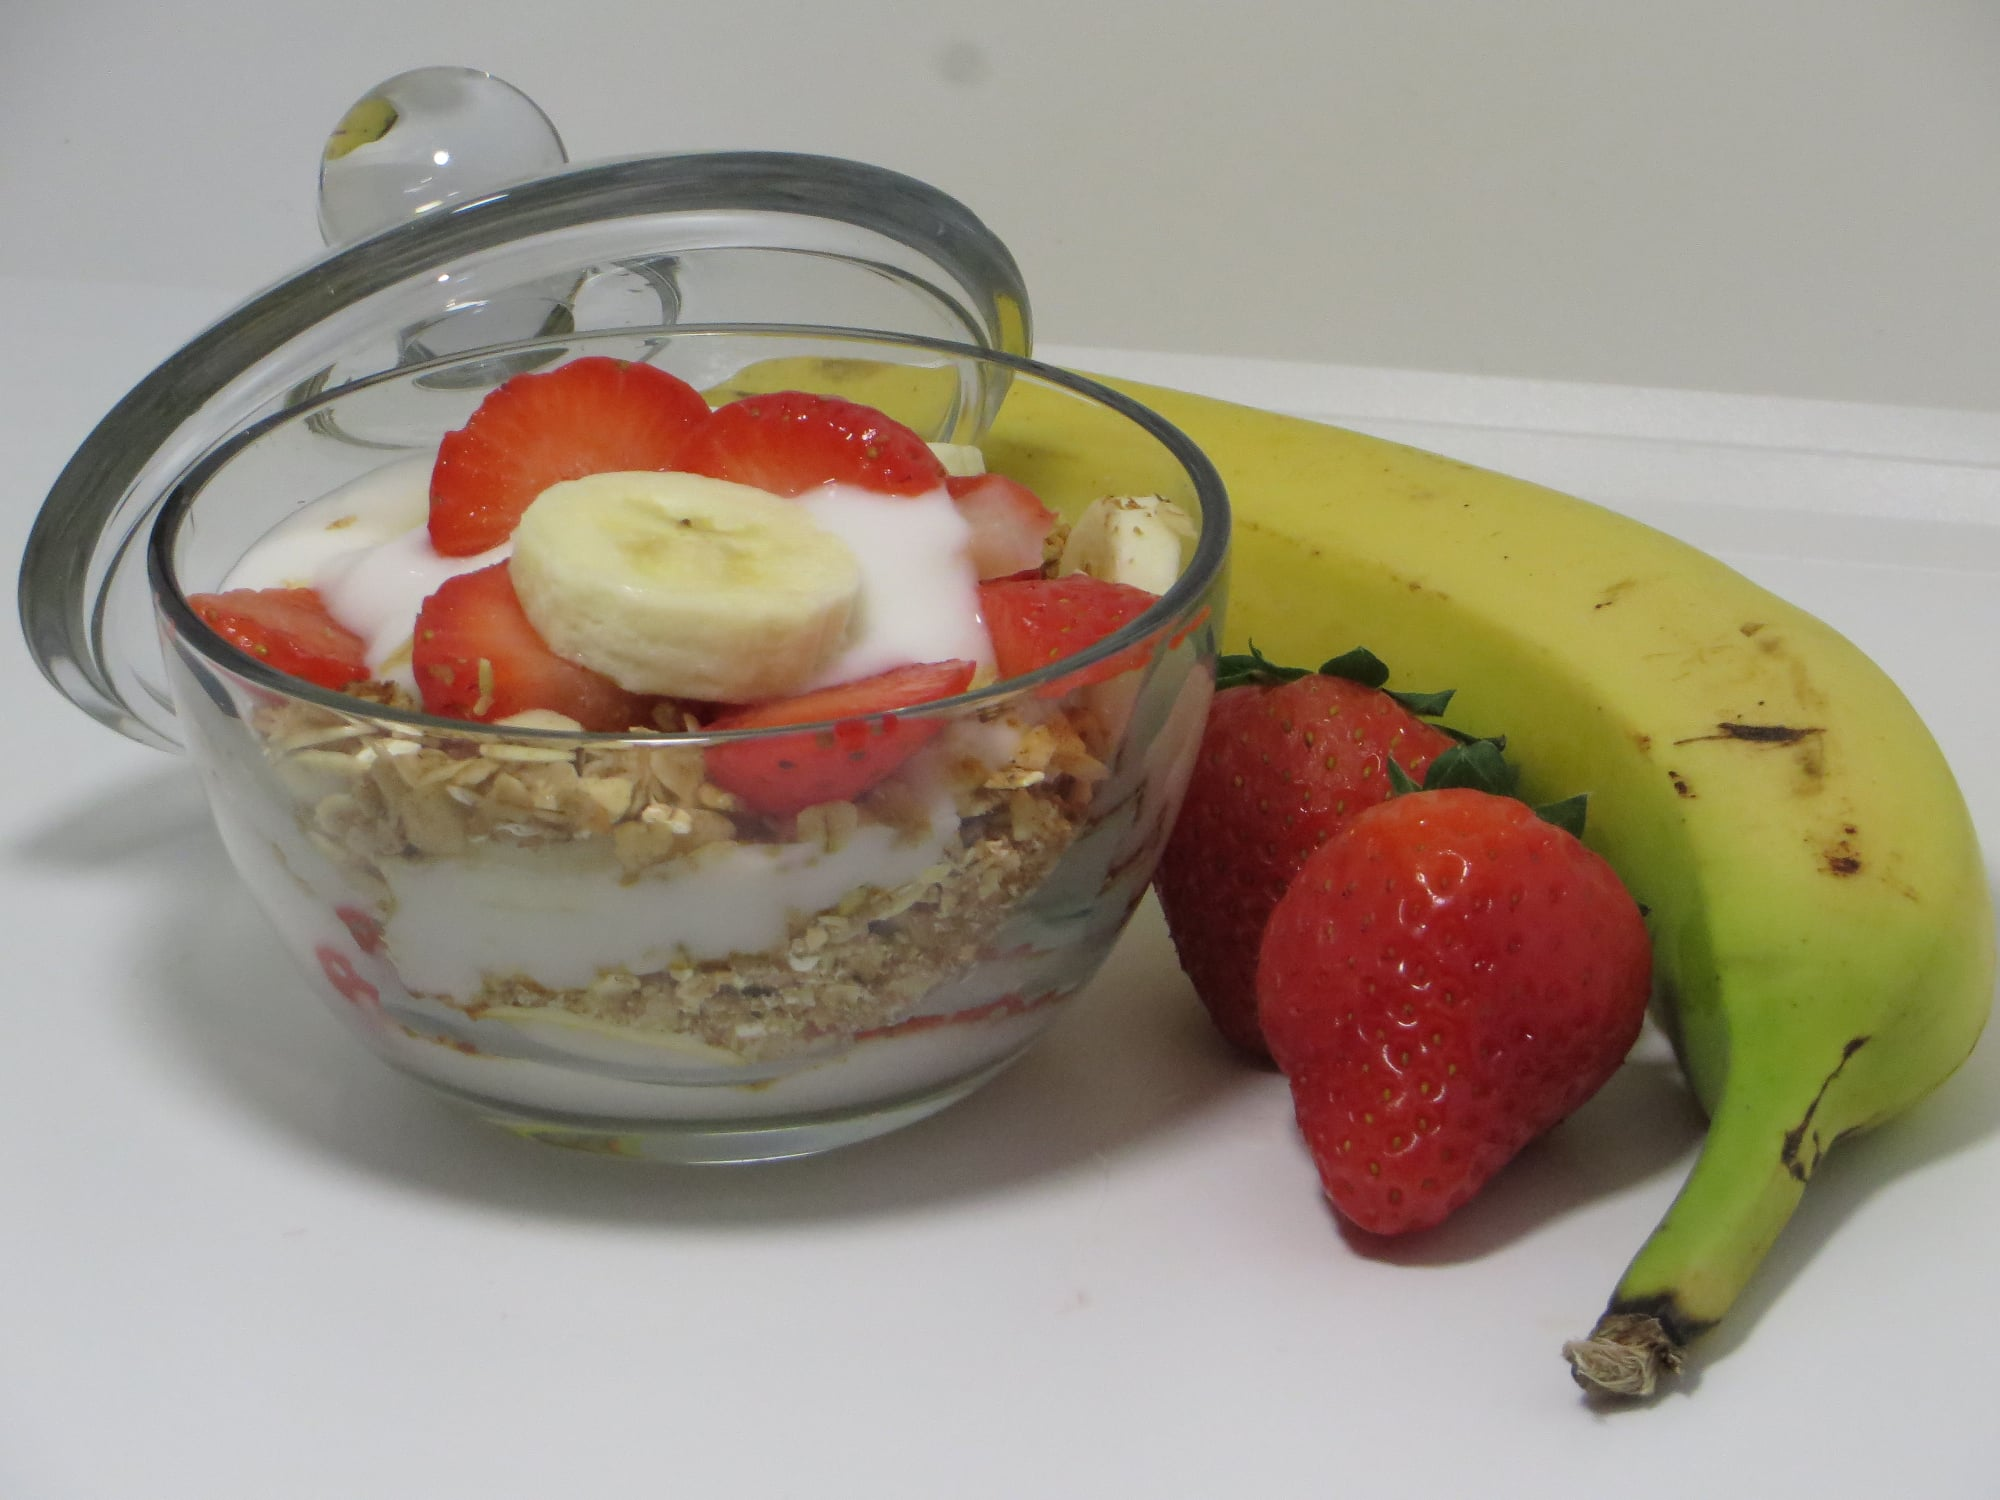 Strawberry-Banana Yogurt & Nutty Granola